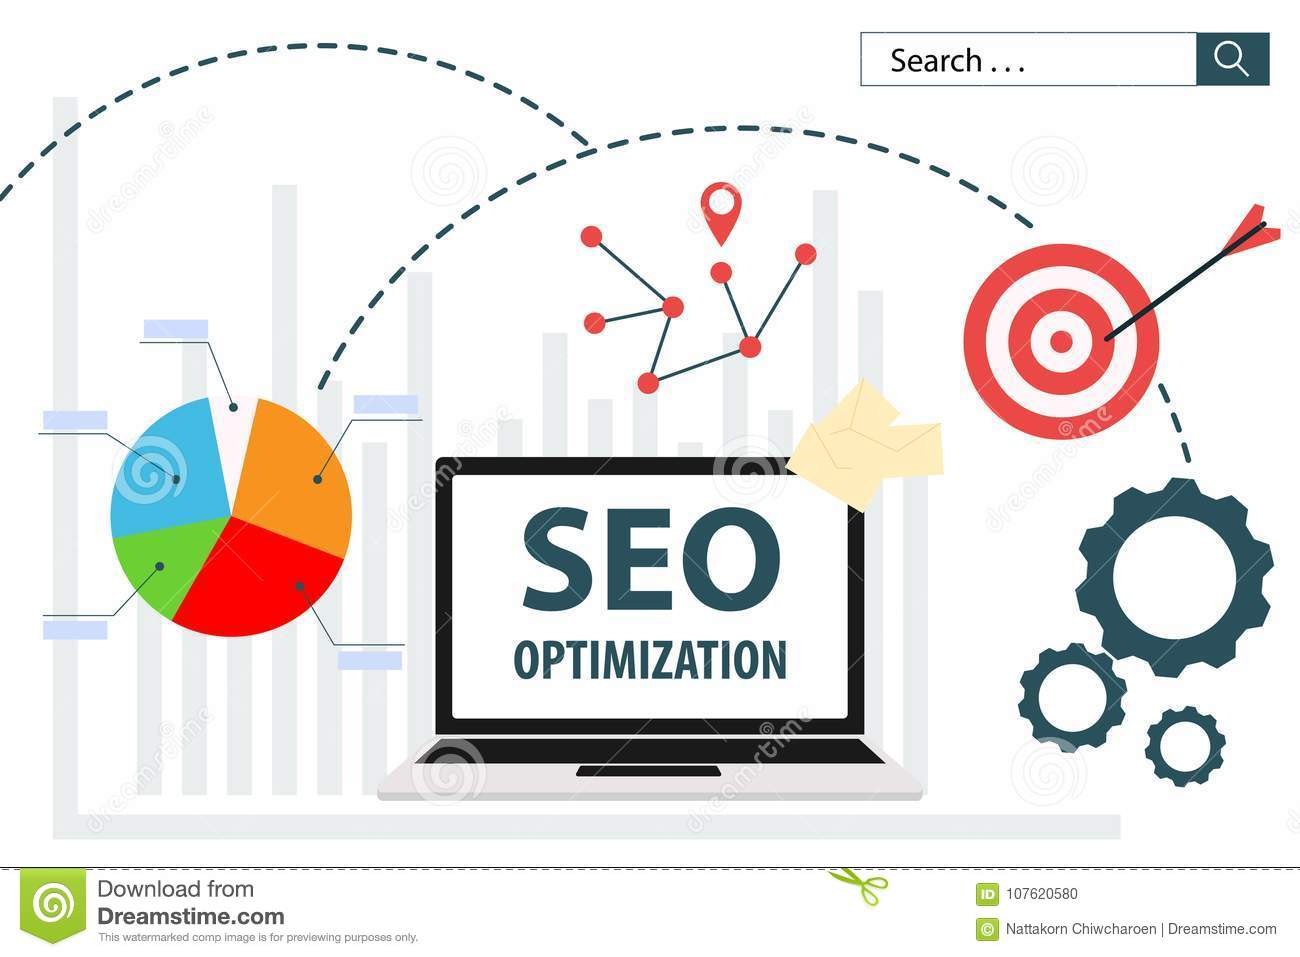 SEO Optimization flat vector illustration web analytics design